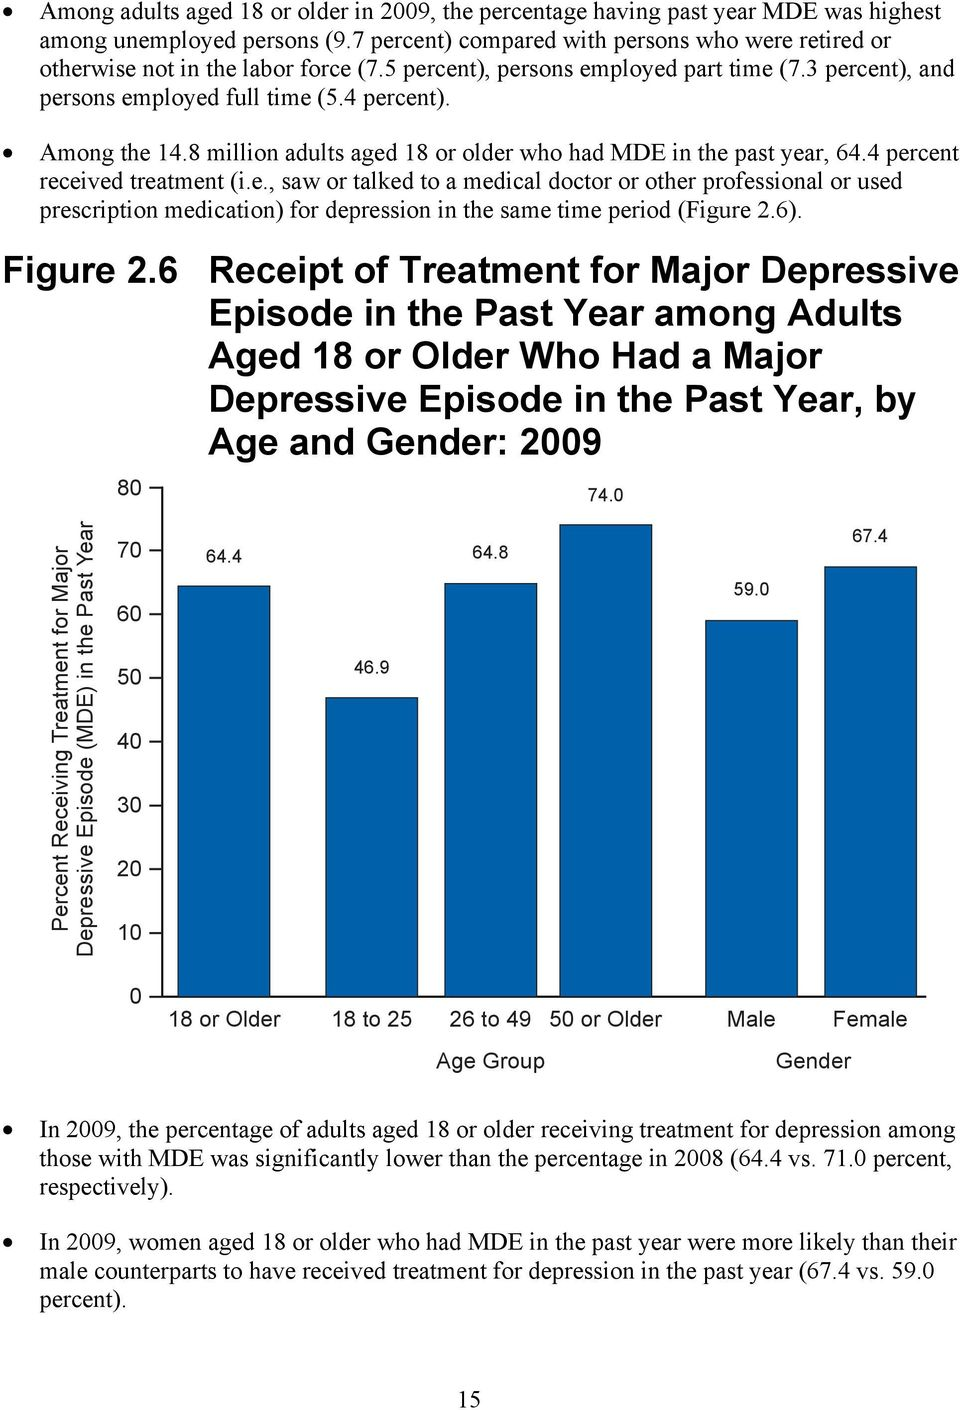 Among the 14.8 million adults aged 18 or older who had MDE in the past year, 64.4 percent received treatment (i.e., saw or talked to a medical doctor or other professional or used prescription medication) for depression in the same time period (Figure 2.